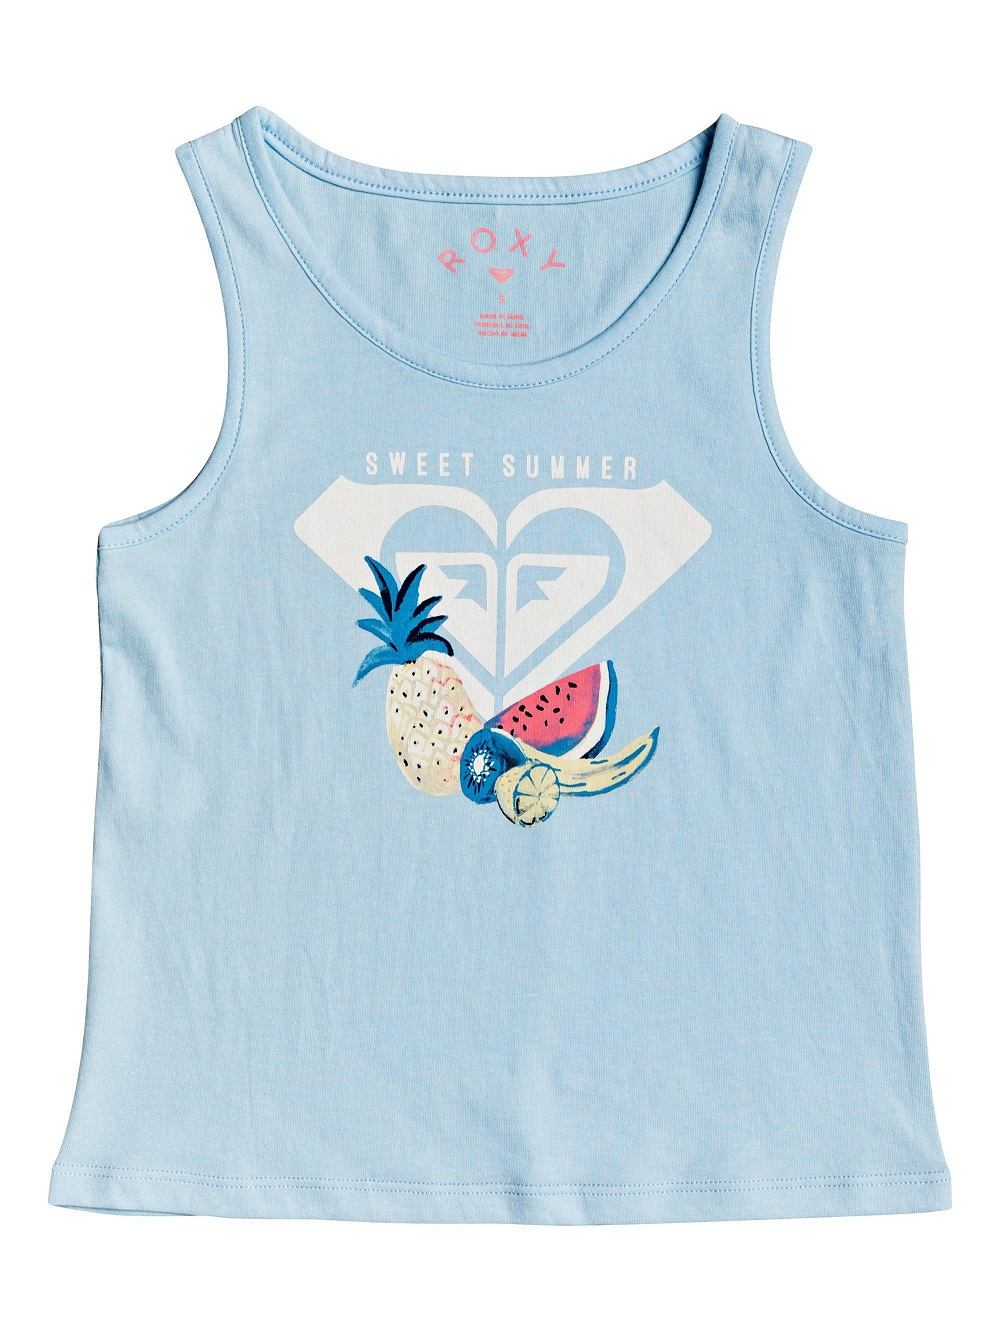 ROXY GIRL'S TANK TOP INTO THE SEA